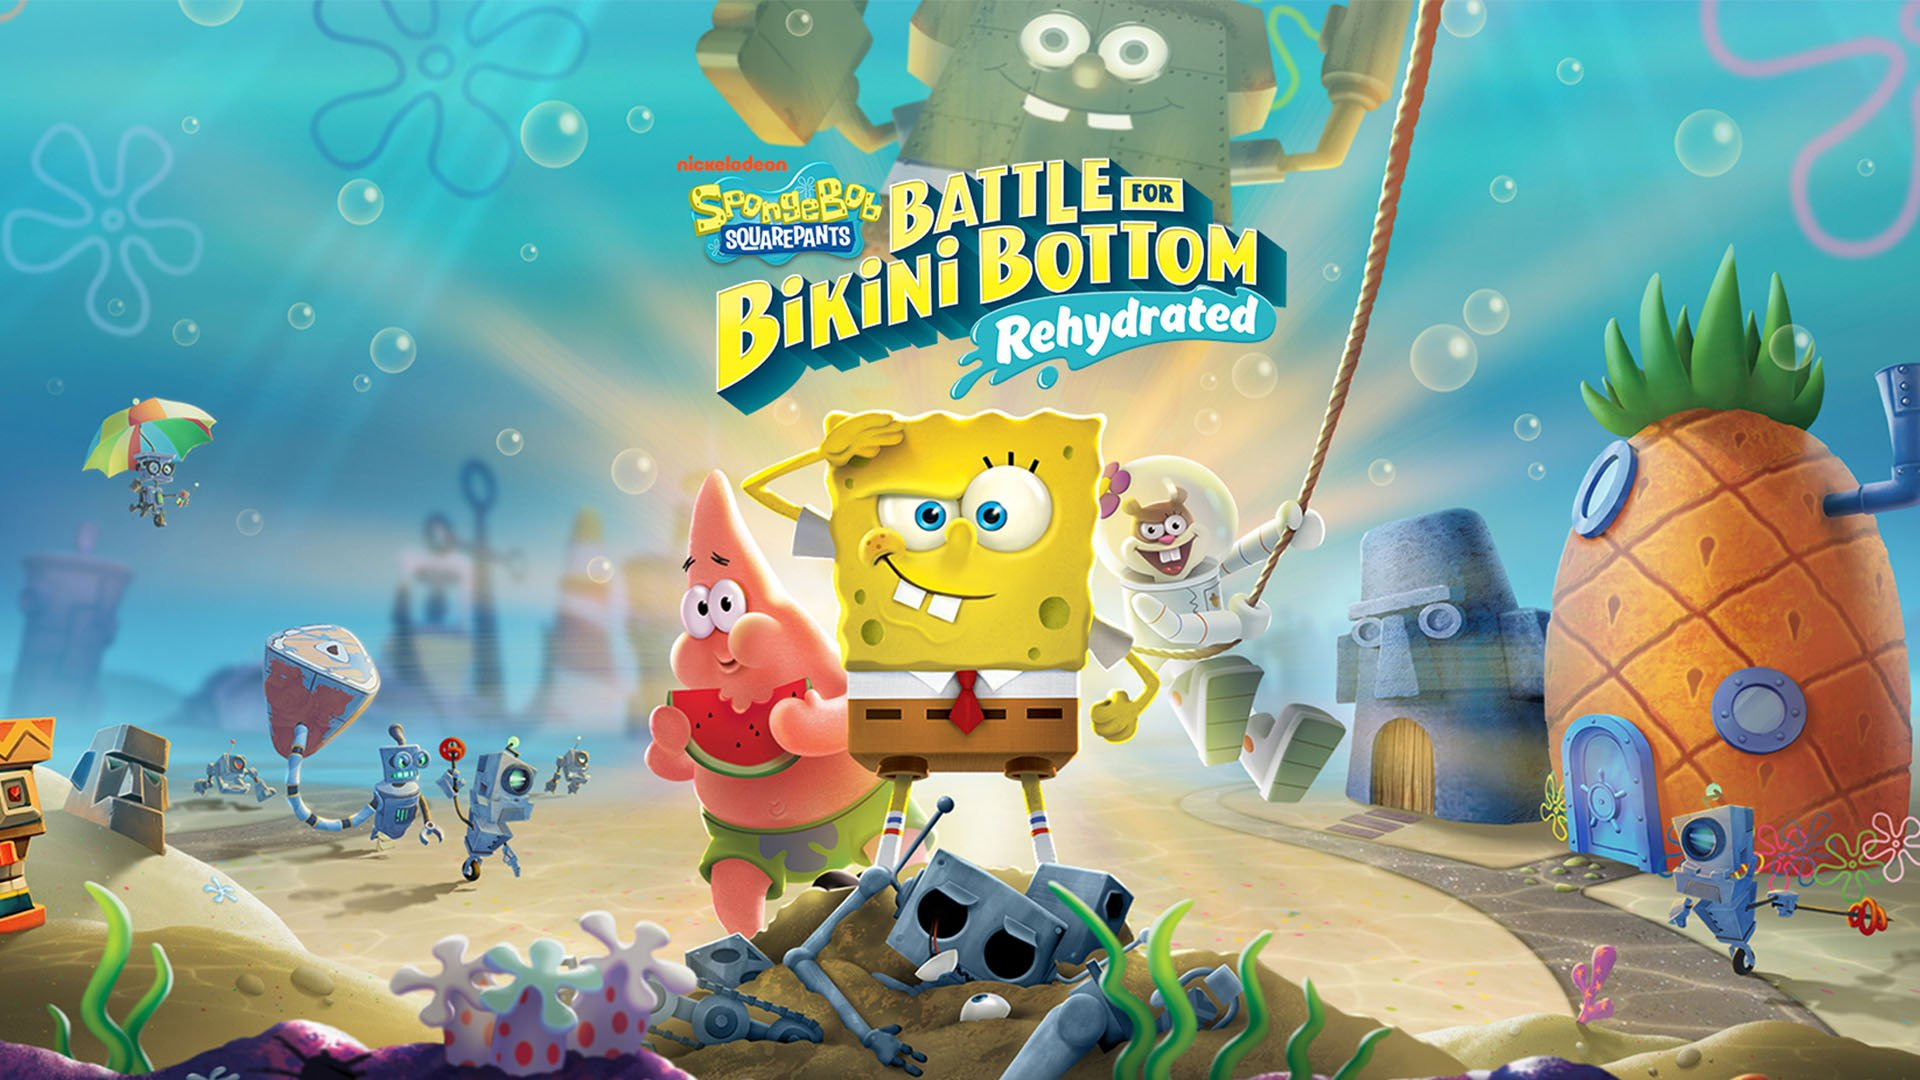 SpongeBob SquarePants: Battle for Bikini Bottom – Rehydrated (PS4) Review